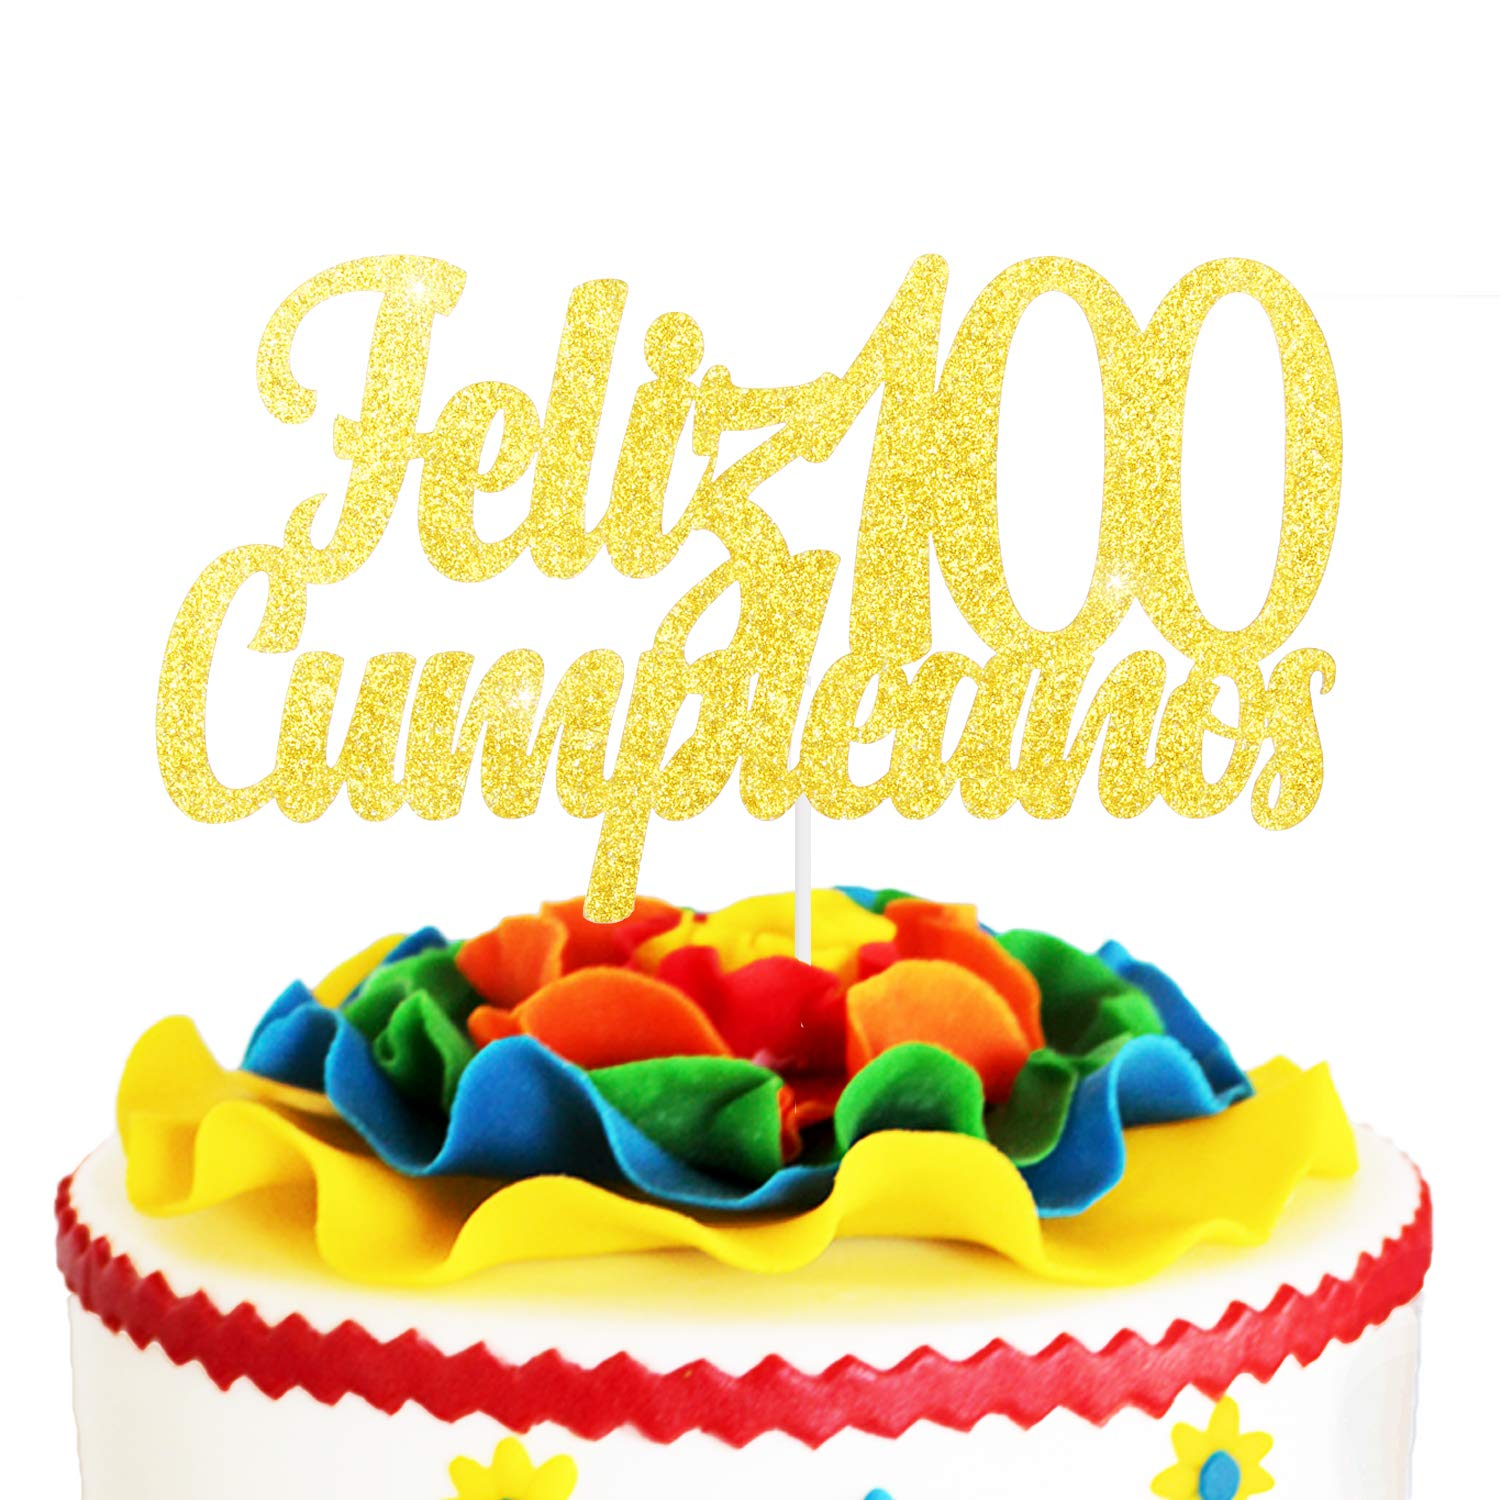 Fabulous Feliz Cumpleanos 100Th Birthday Cake Topper Gold Glitter Spanish Funny Birthday Cards Online Aboleapandamsfinfo